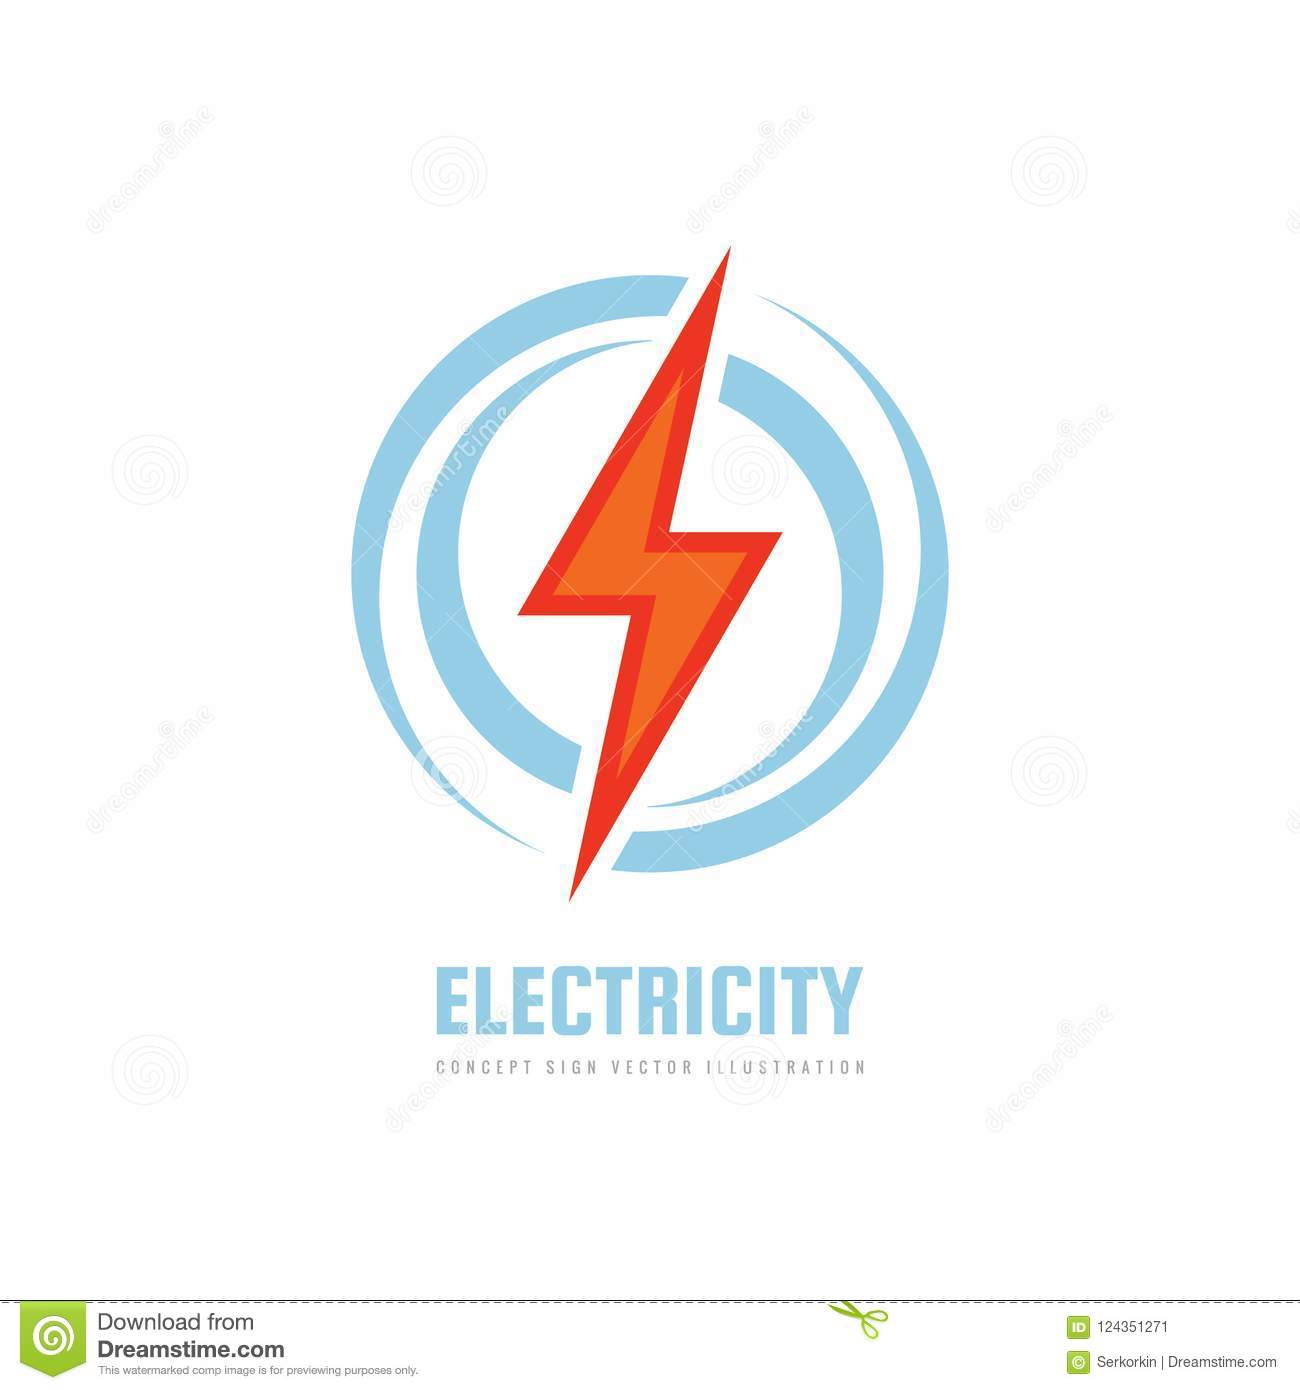 Lightning vector business logo template concept illustration download lightning vector business logo template concept illustration electricity power icon sign electric wajeb Choice Image